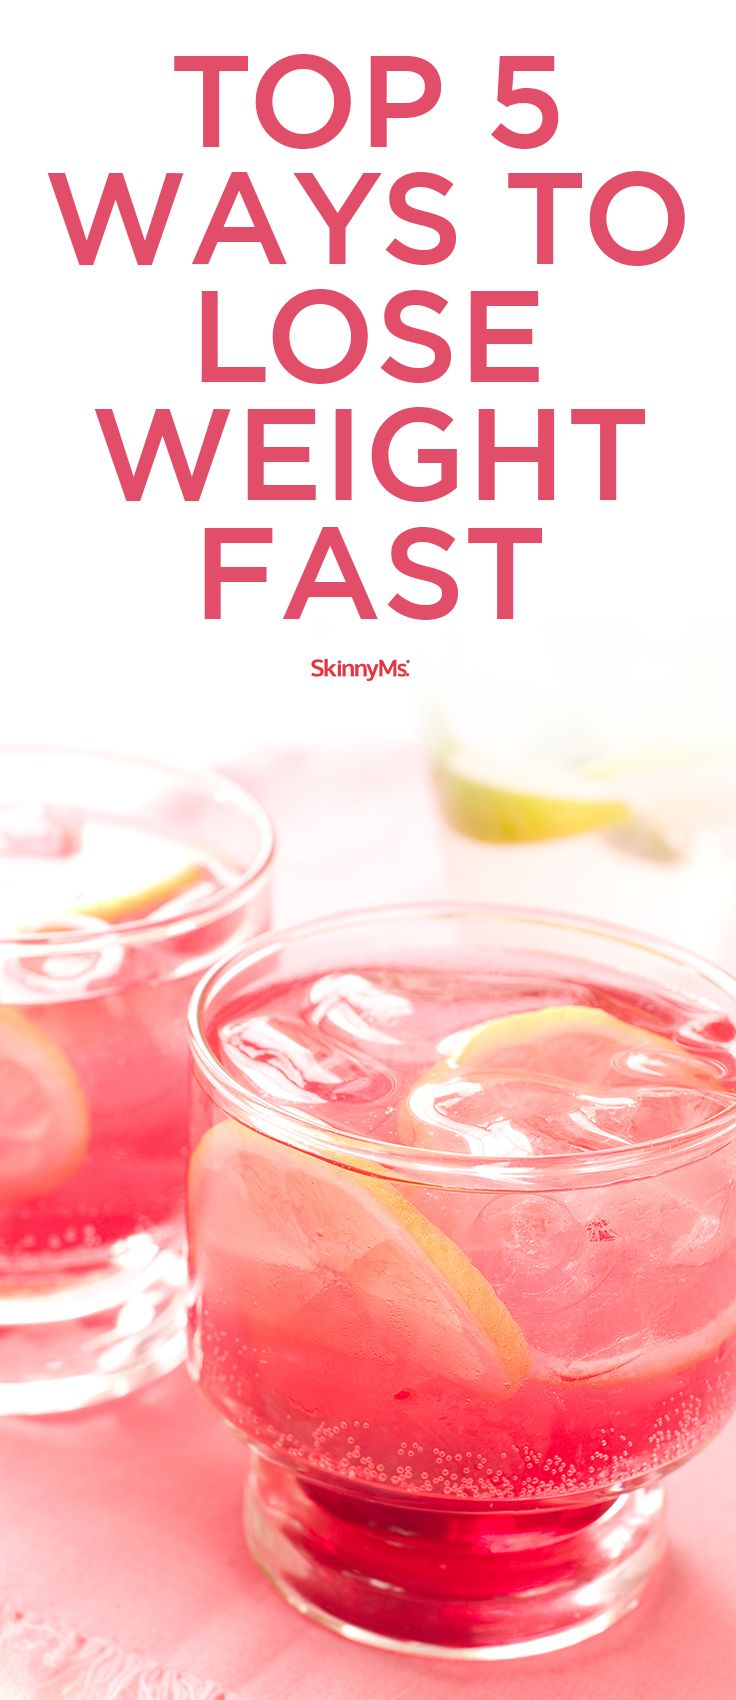 Top 5 Ways to Lose Weight Fast